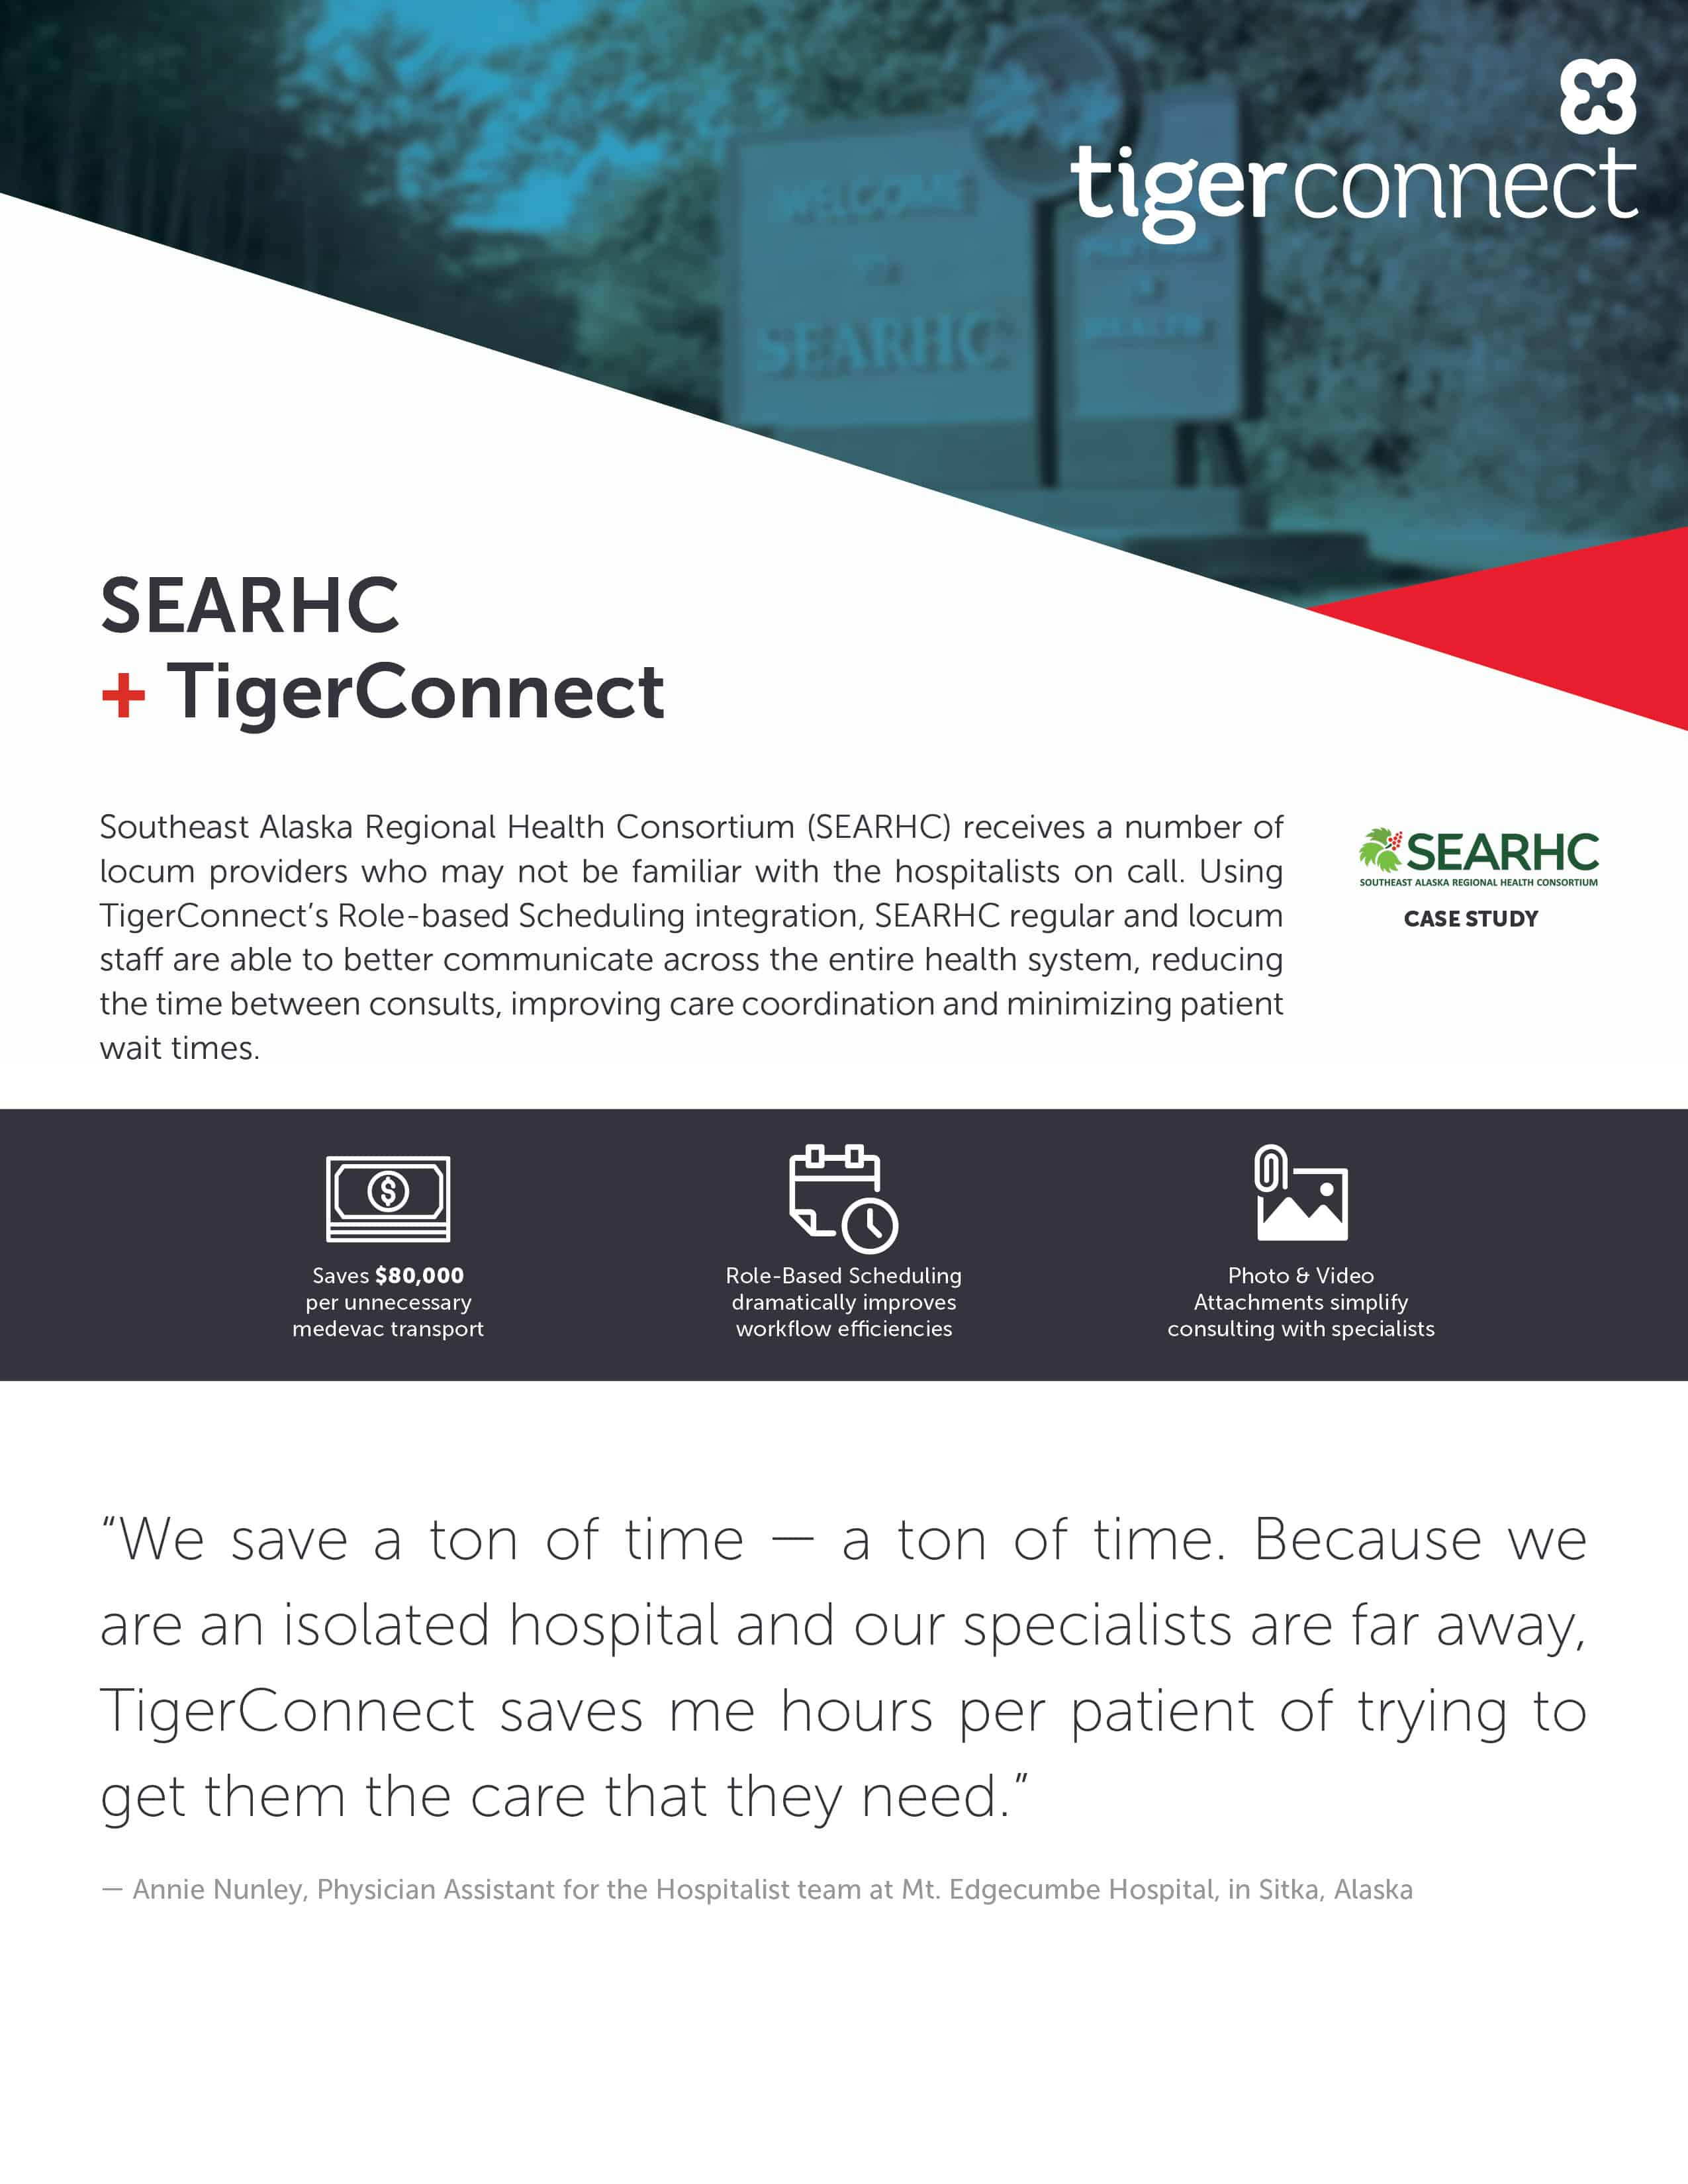 Southeast Alaska Regional Health Consortium (SEARHC) Case Study for TigerConnect